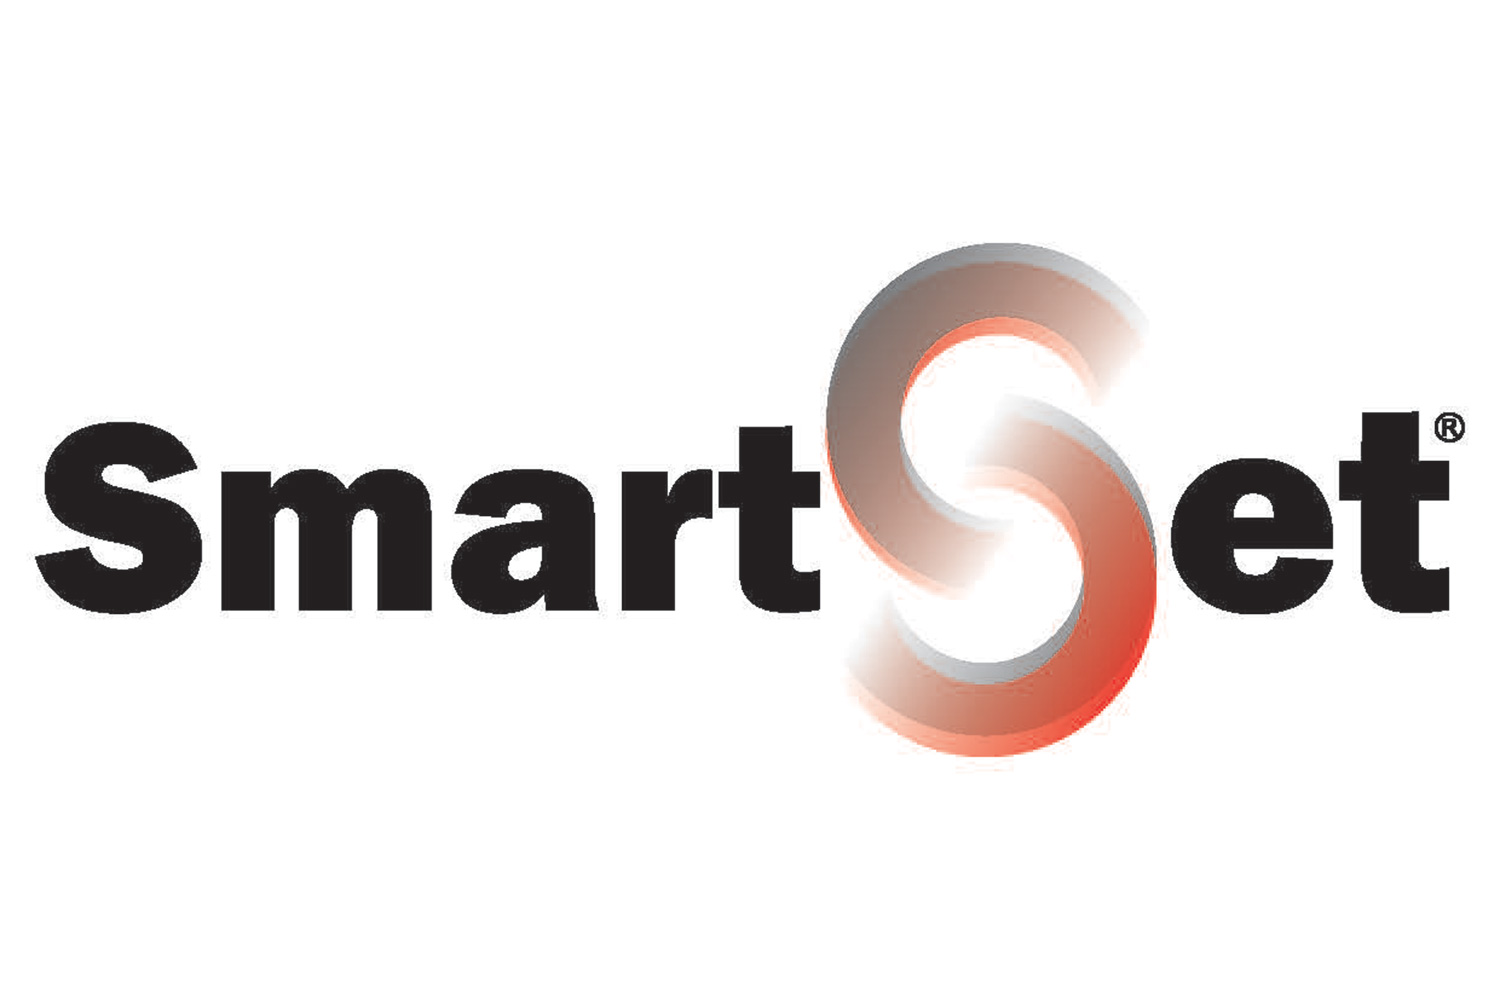 Smartset, condition monitoring of wheelset loads